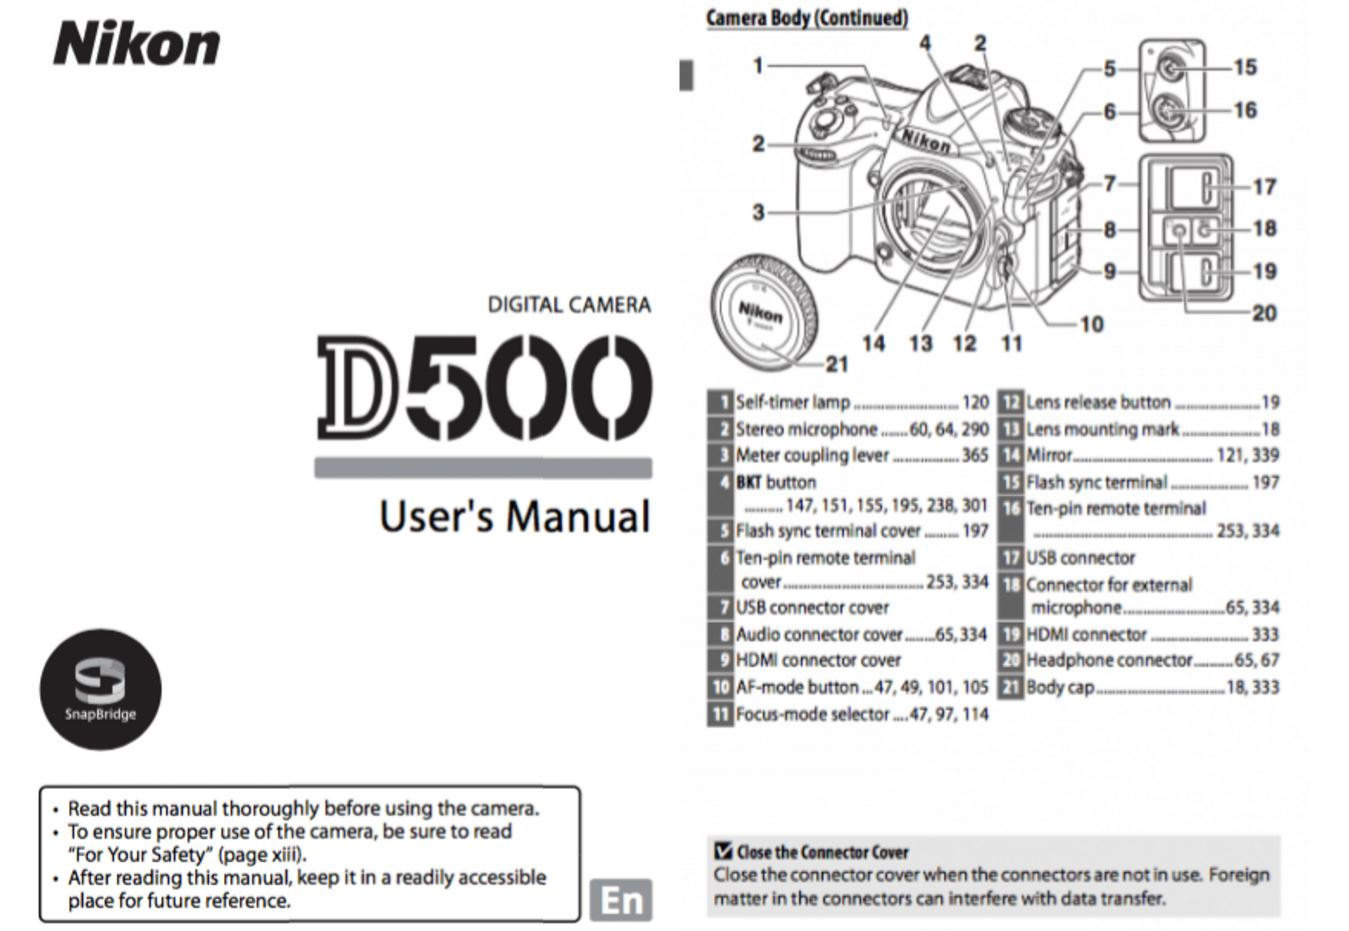 nikon d500 user s manual now available for download camera news at rh cameraegg org nikon d7000 manual focus nikon d7000 manual mode